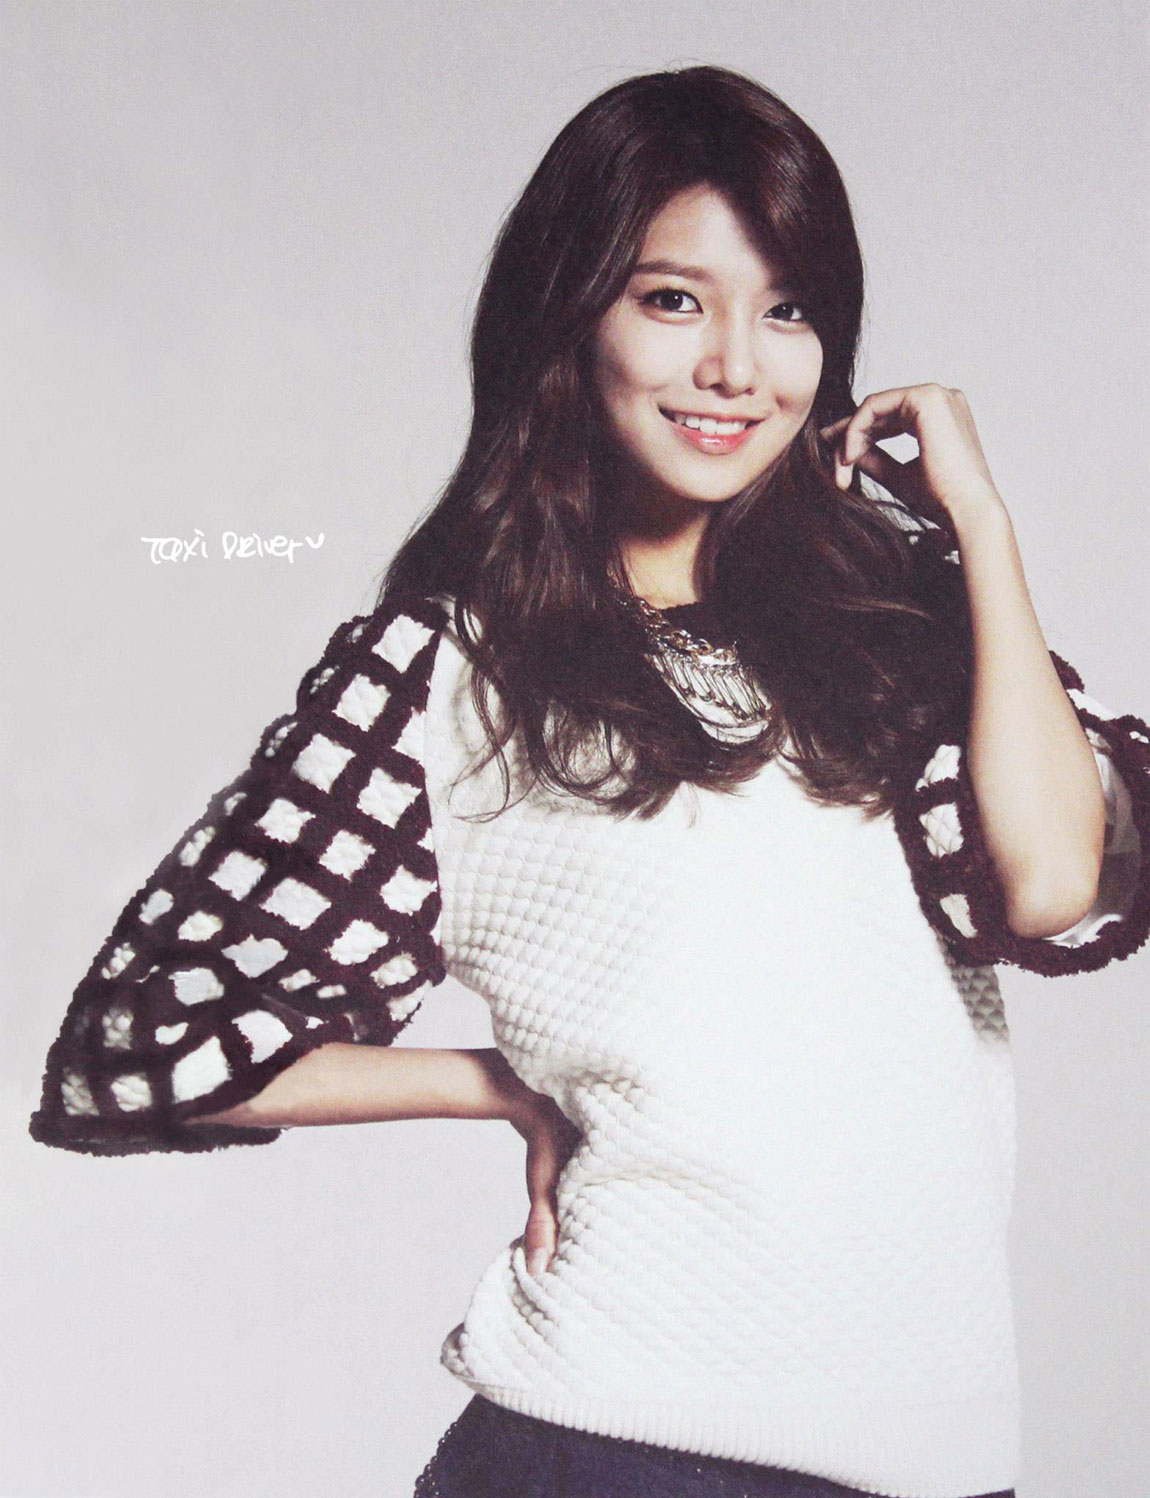 Girls Generation Sooyoung 2014 calendar